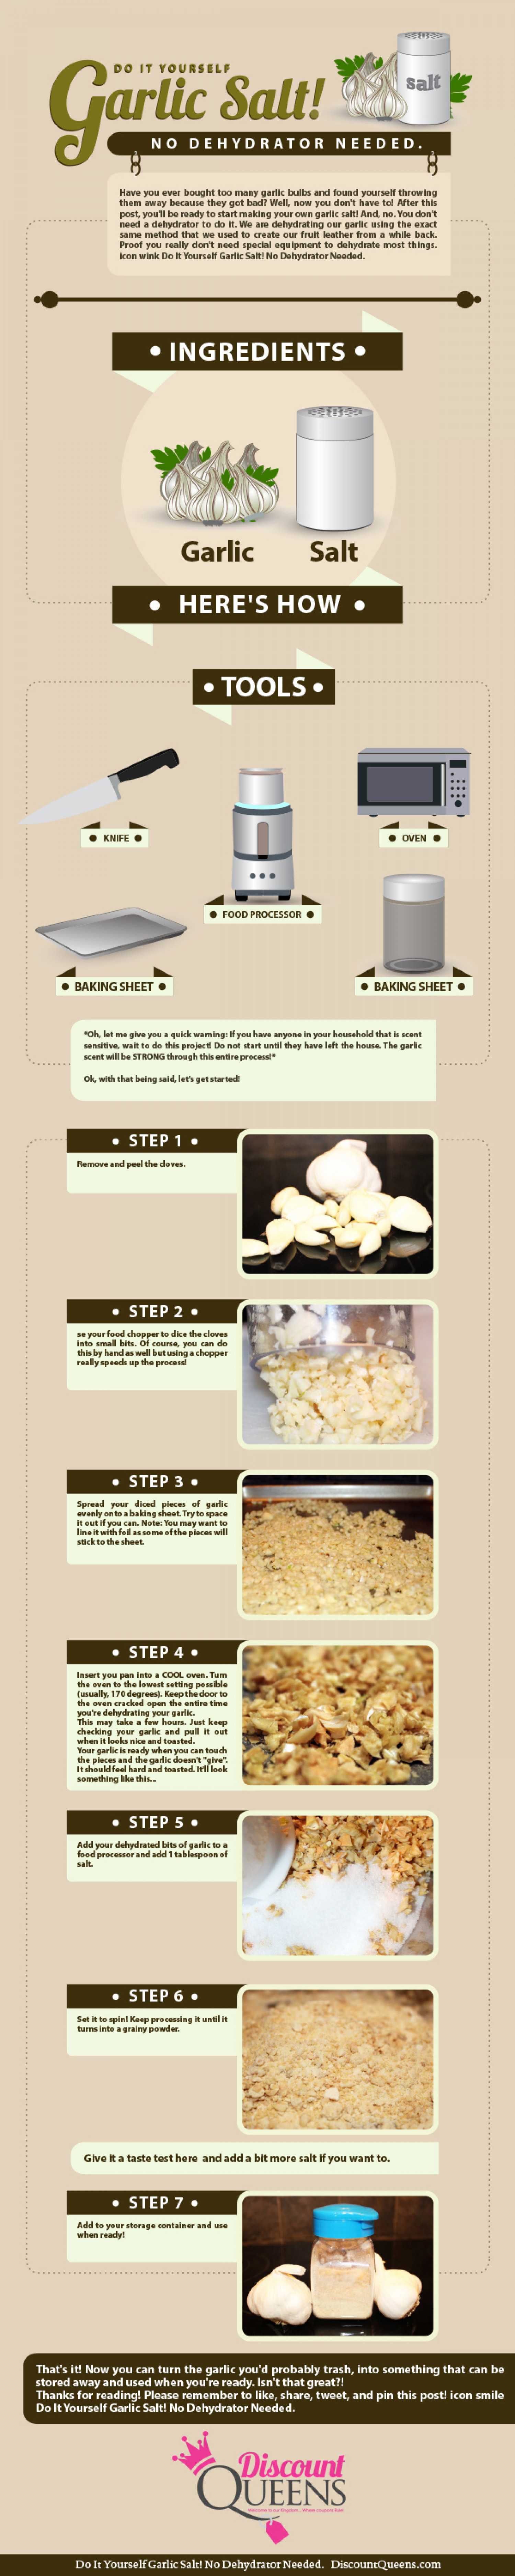 DIY - Garlic Salt Infographic